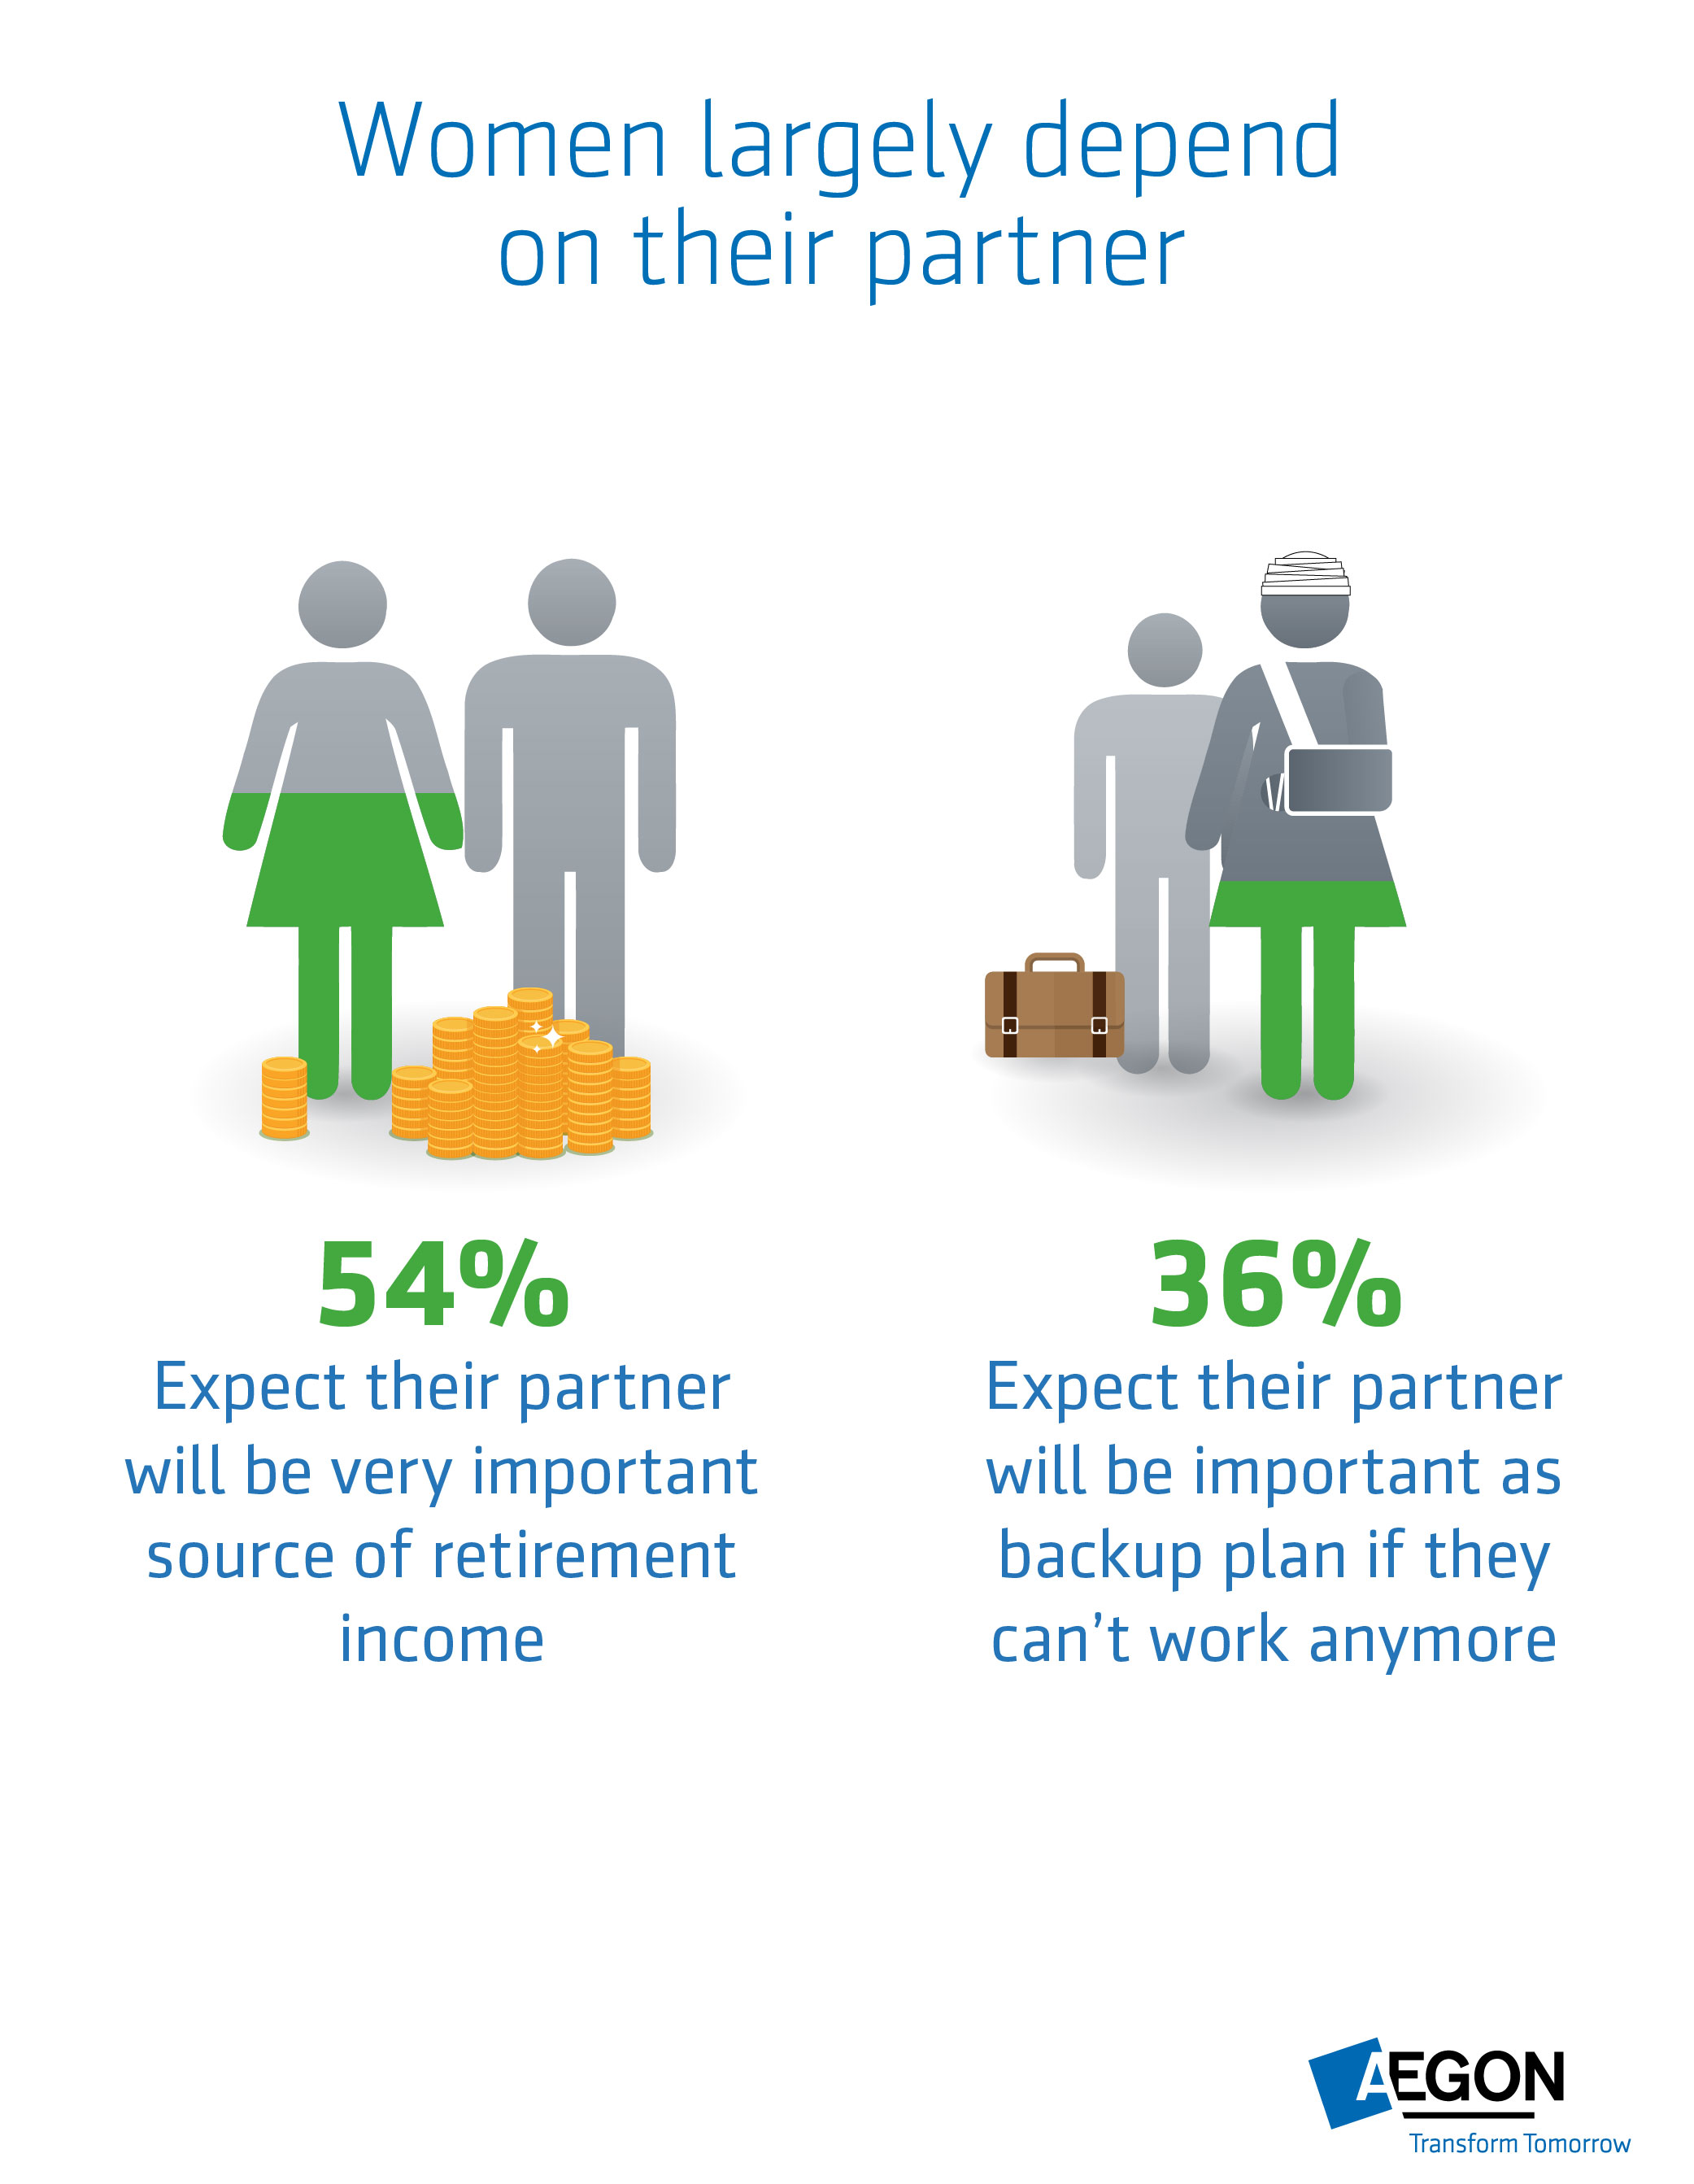 Aegon research: Women more likely to rely on their partner for retirement income